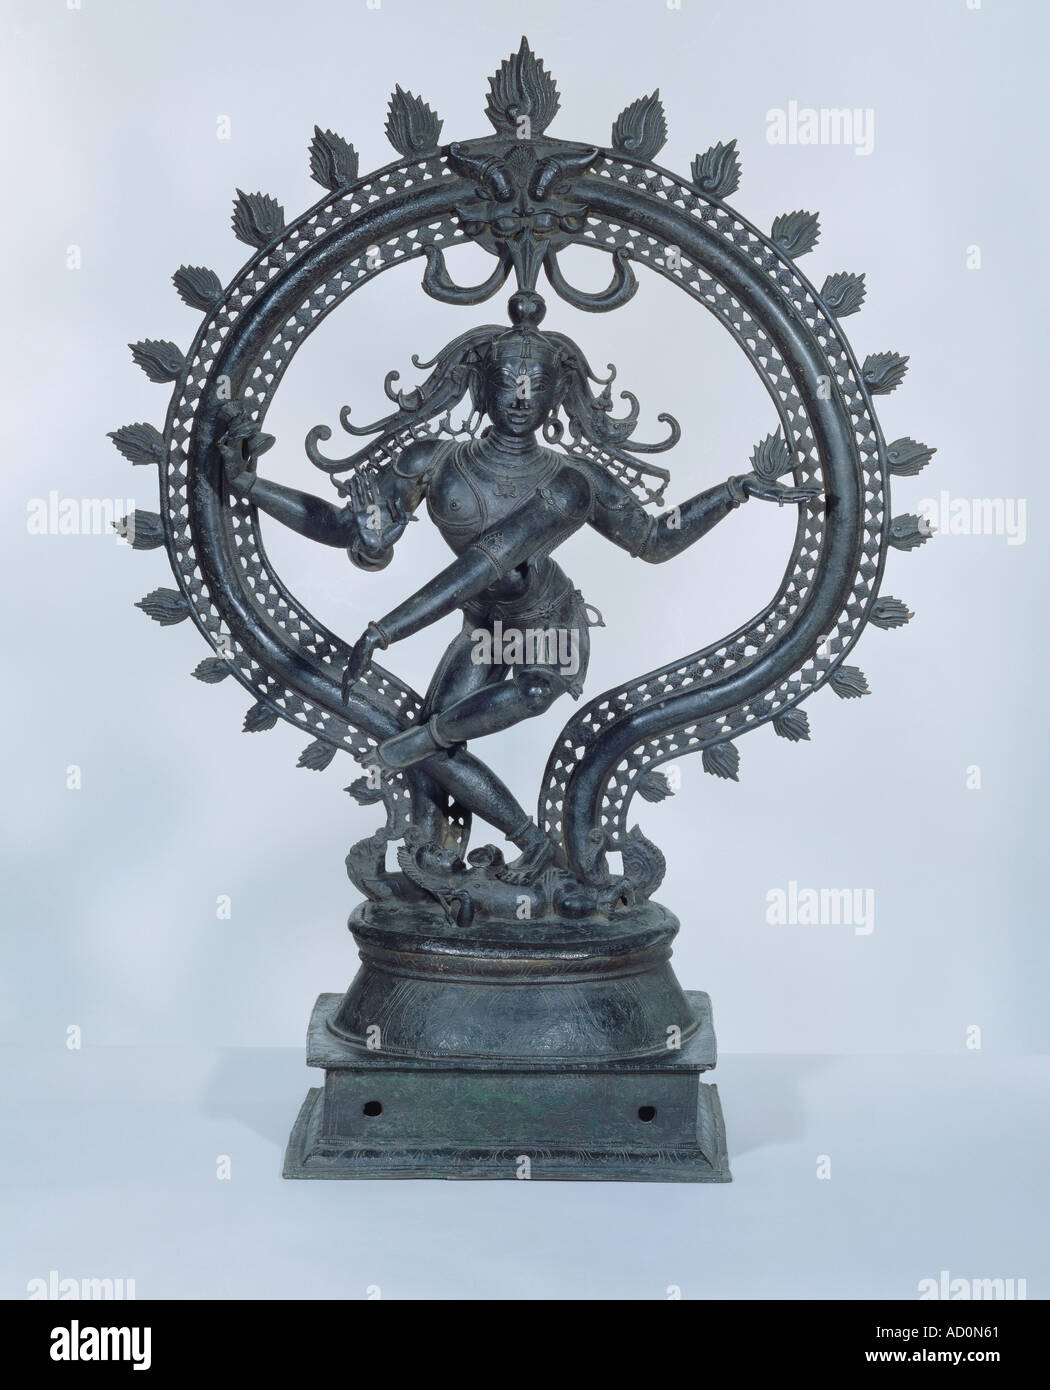 Shiva Nataraja. India, 18th century. - Stock Image